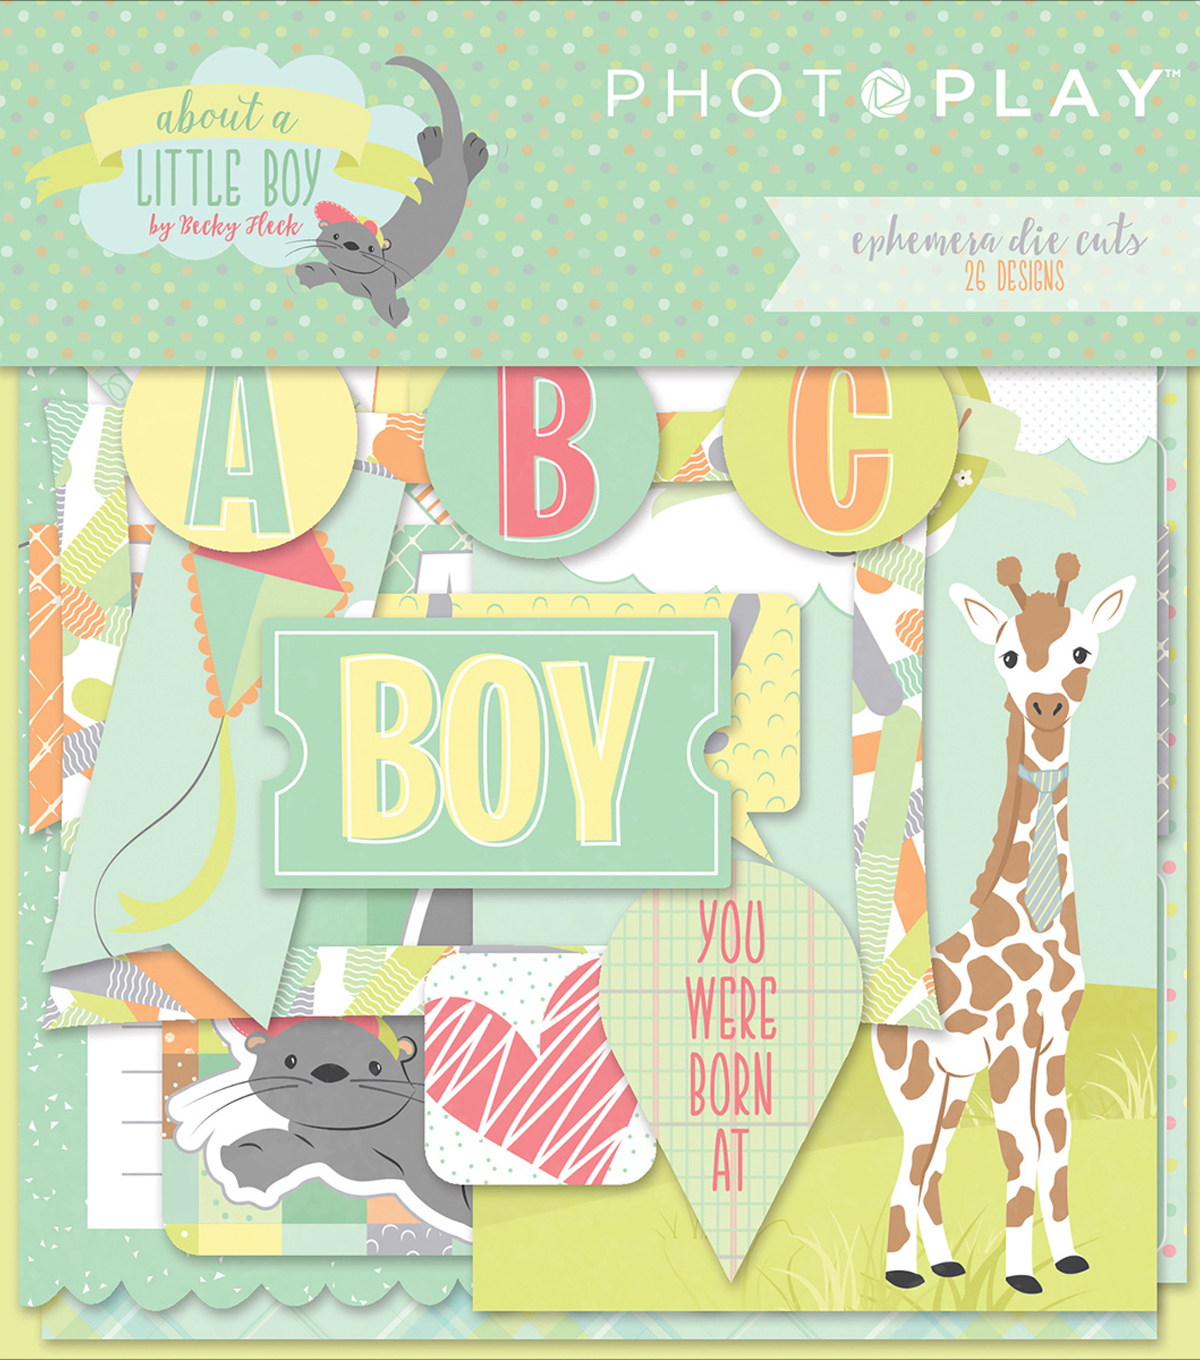 Photo Play Paper Ephemera Cardstock Die-Cuts-About A Little Boy